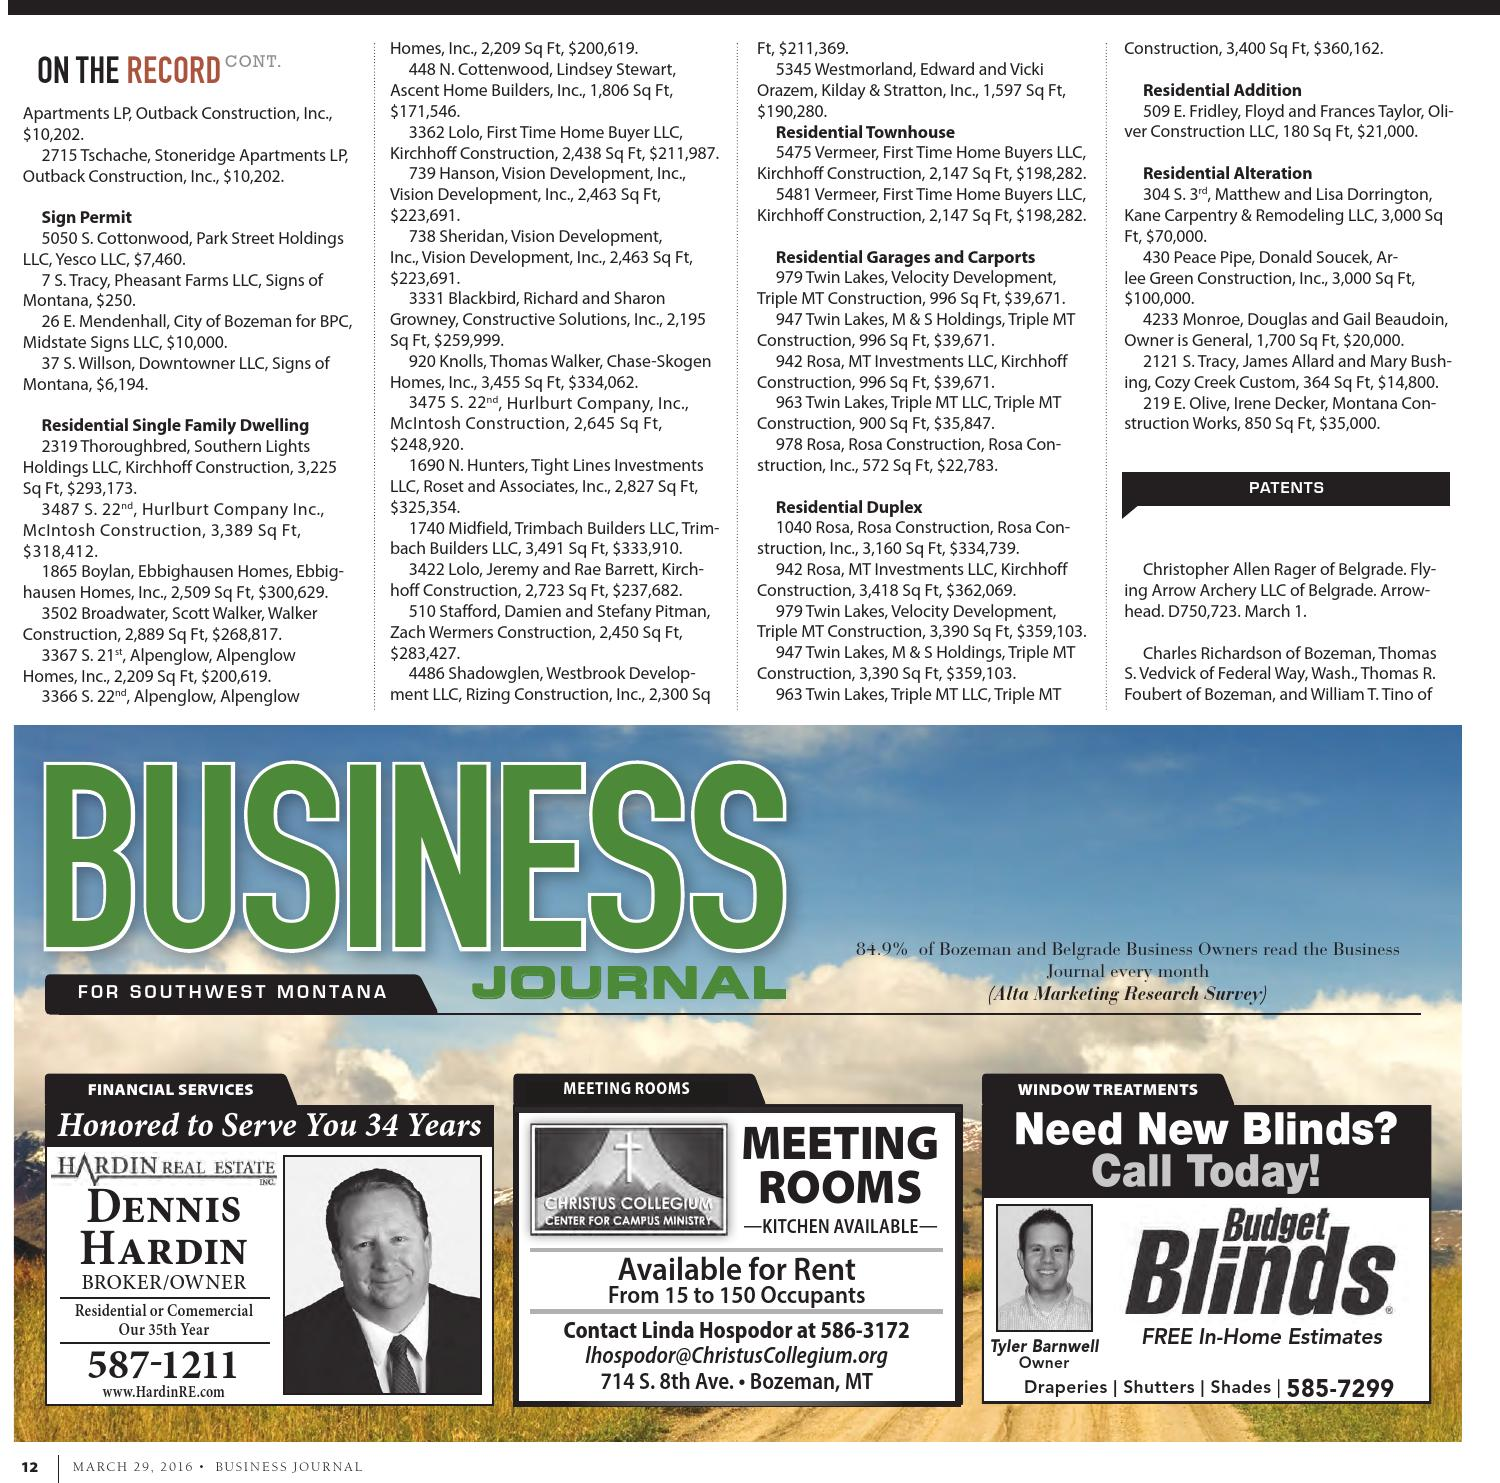 Business Journal - March 2016 by Bozeman Daily Chronicle - issuu